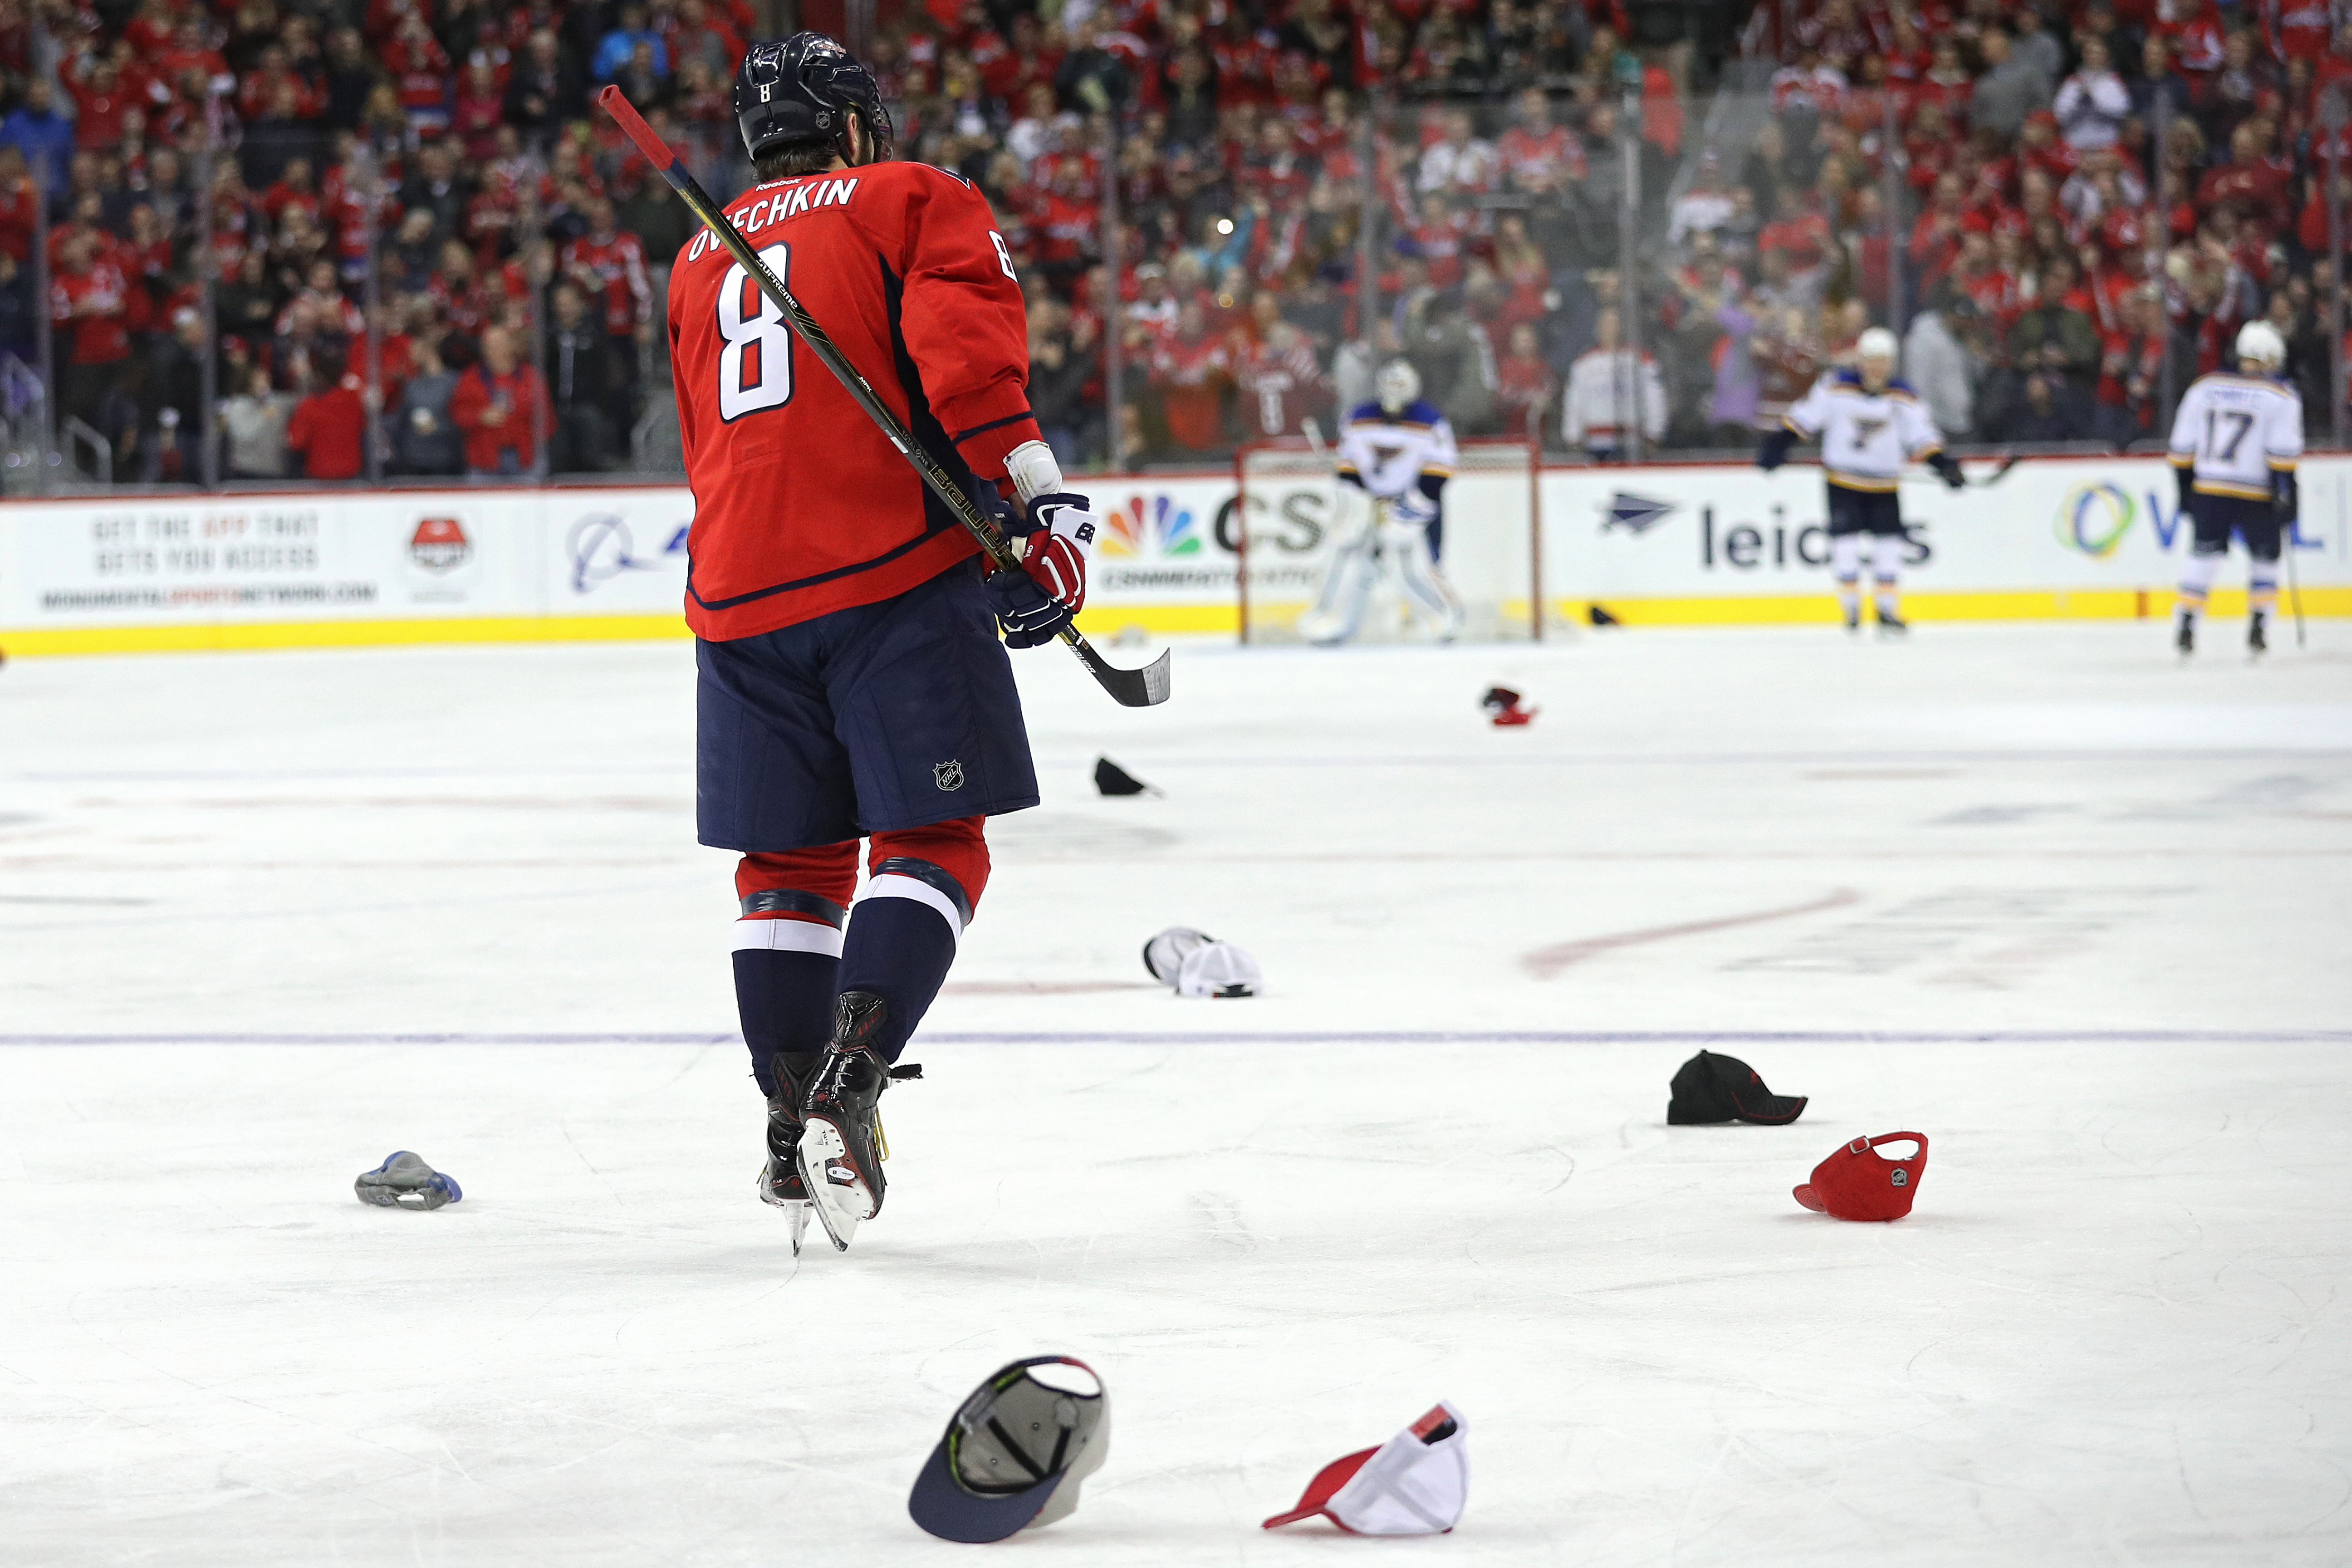 Alex Ovechkin, who had a hat trick Wednesday, is on verge of two milestones. (Getty Images)